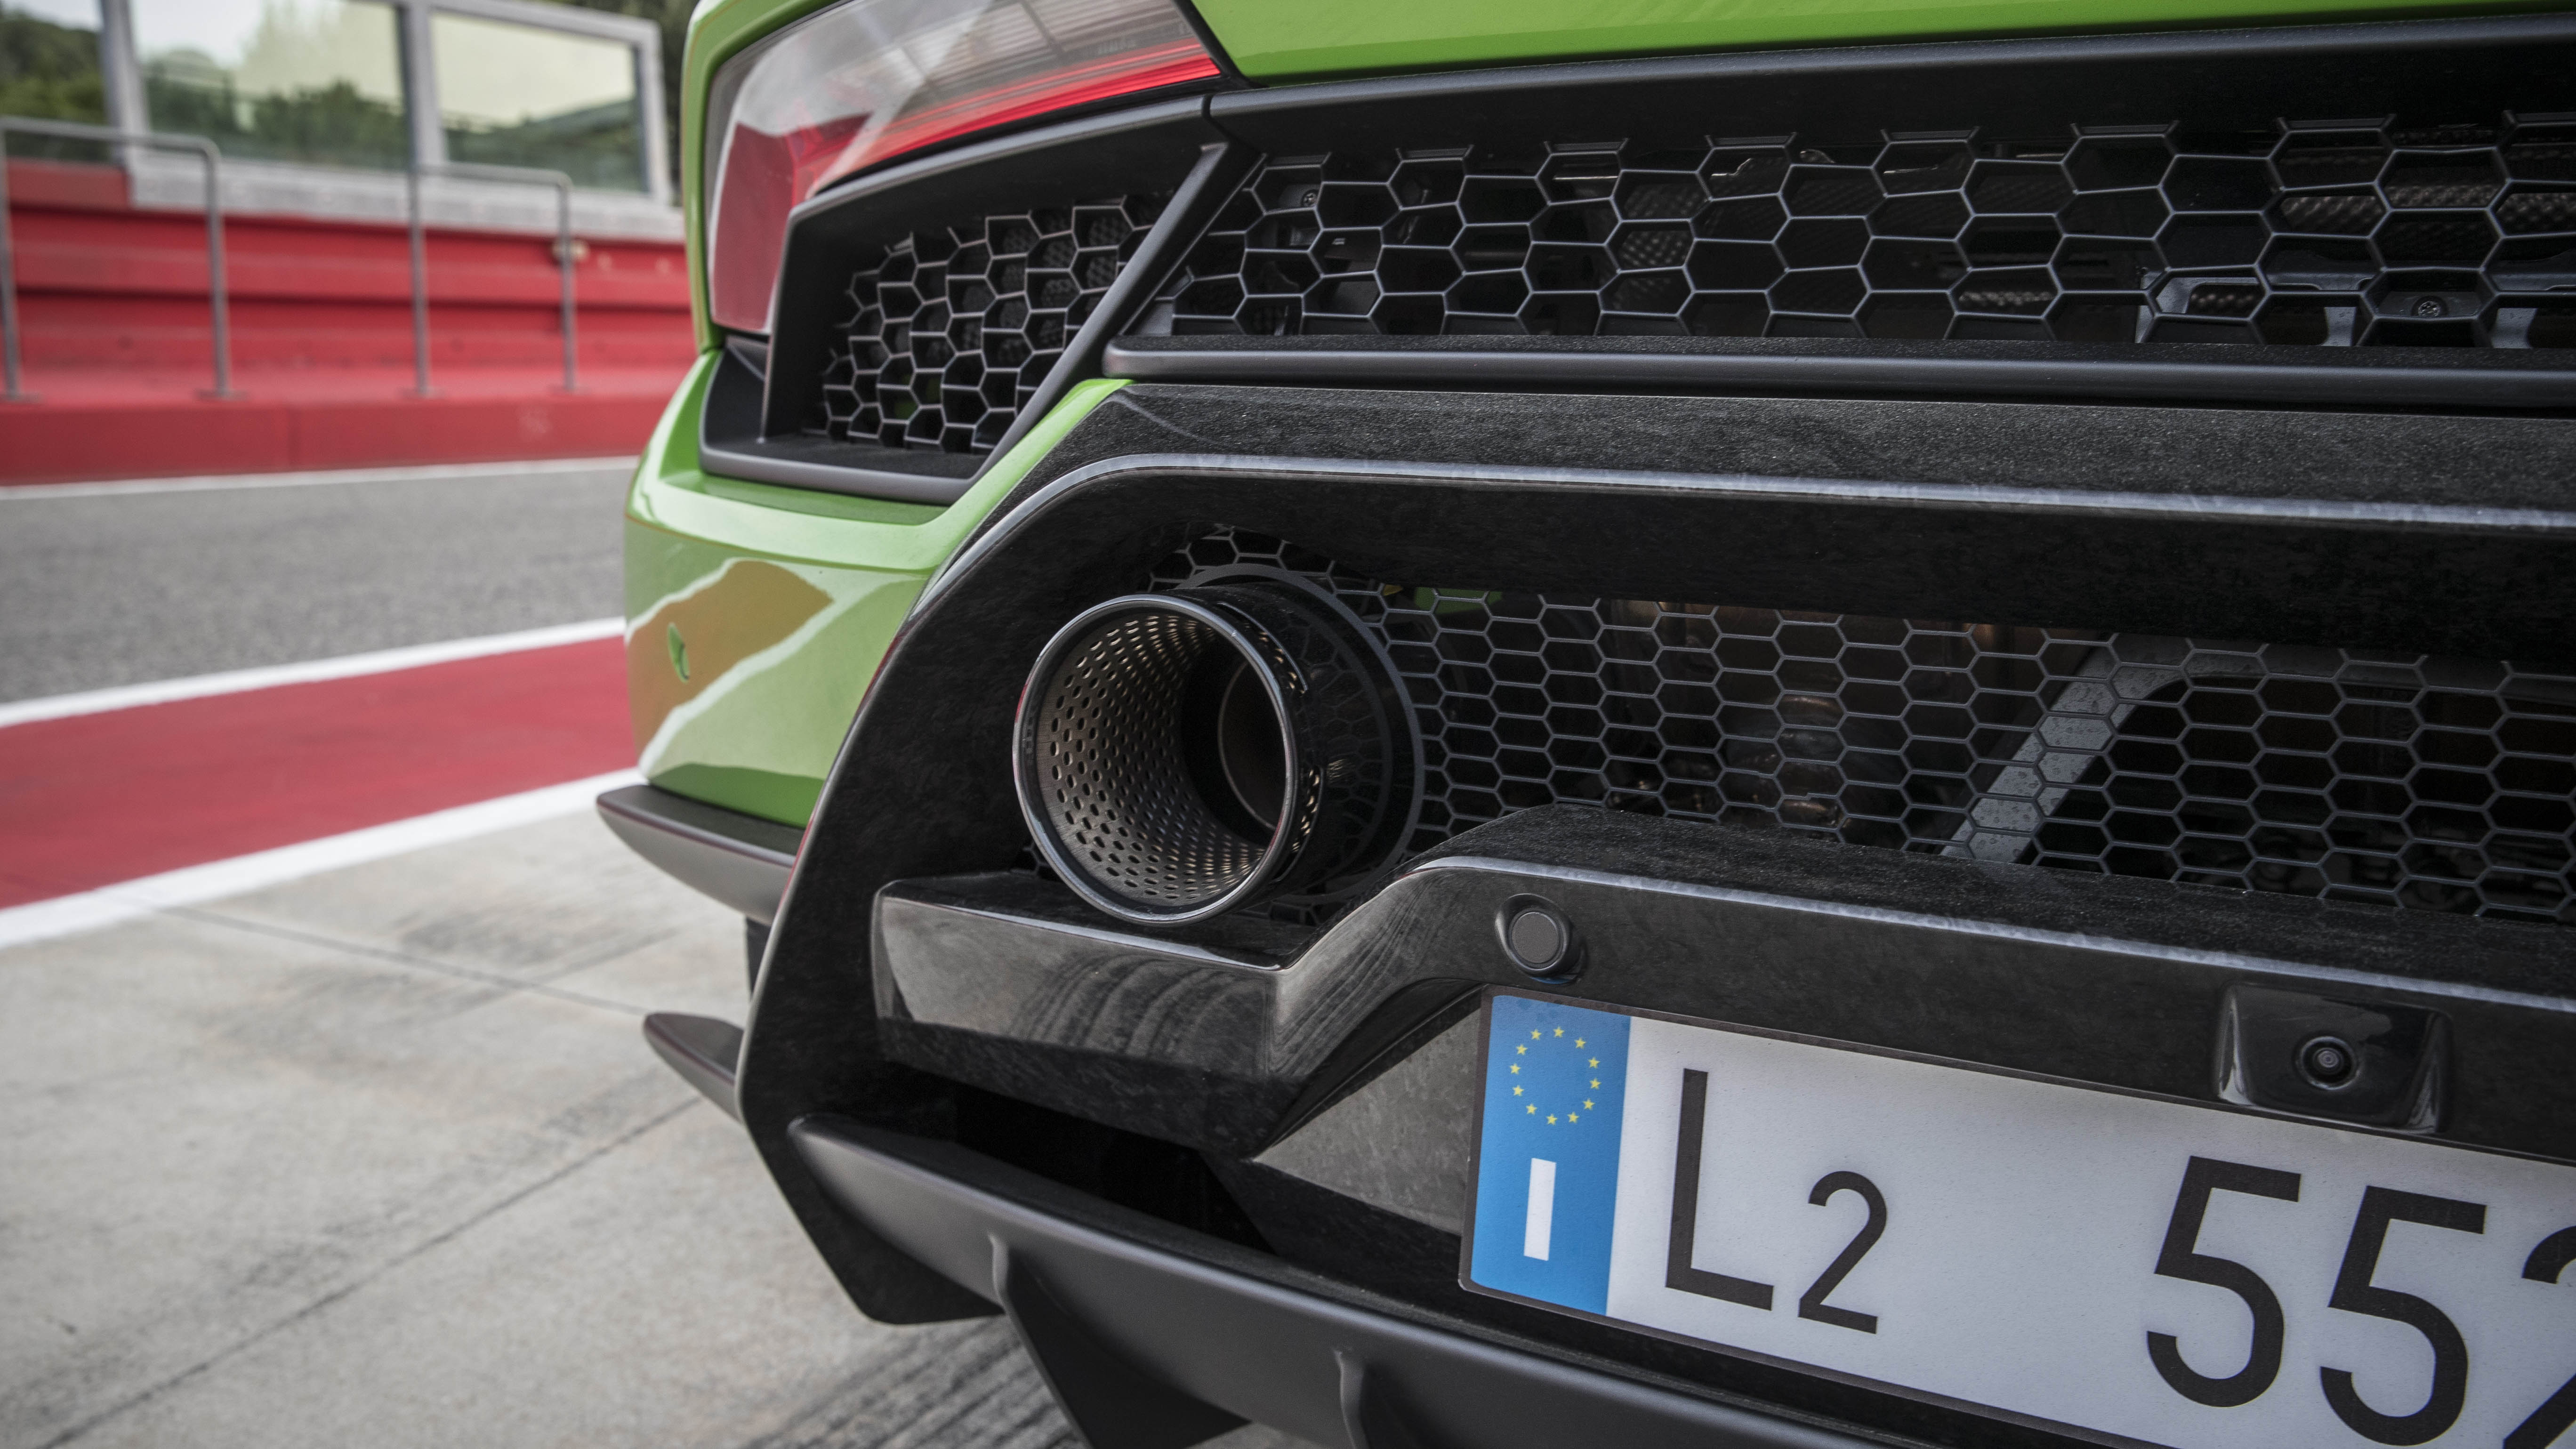 Lamborghini Huracan Performante rear exhaust